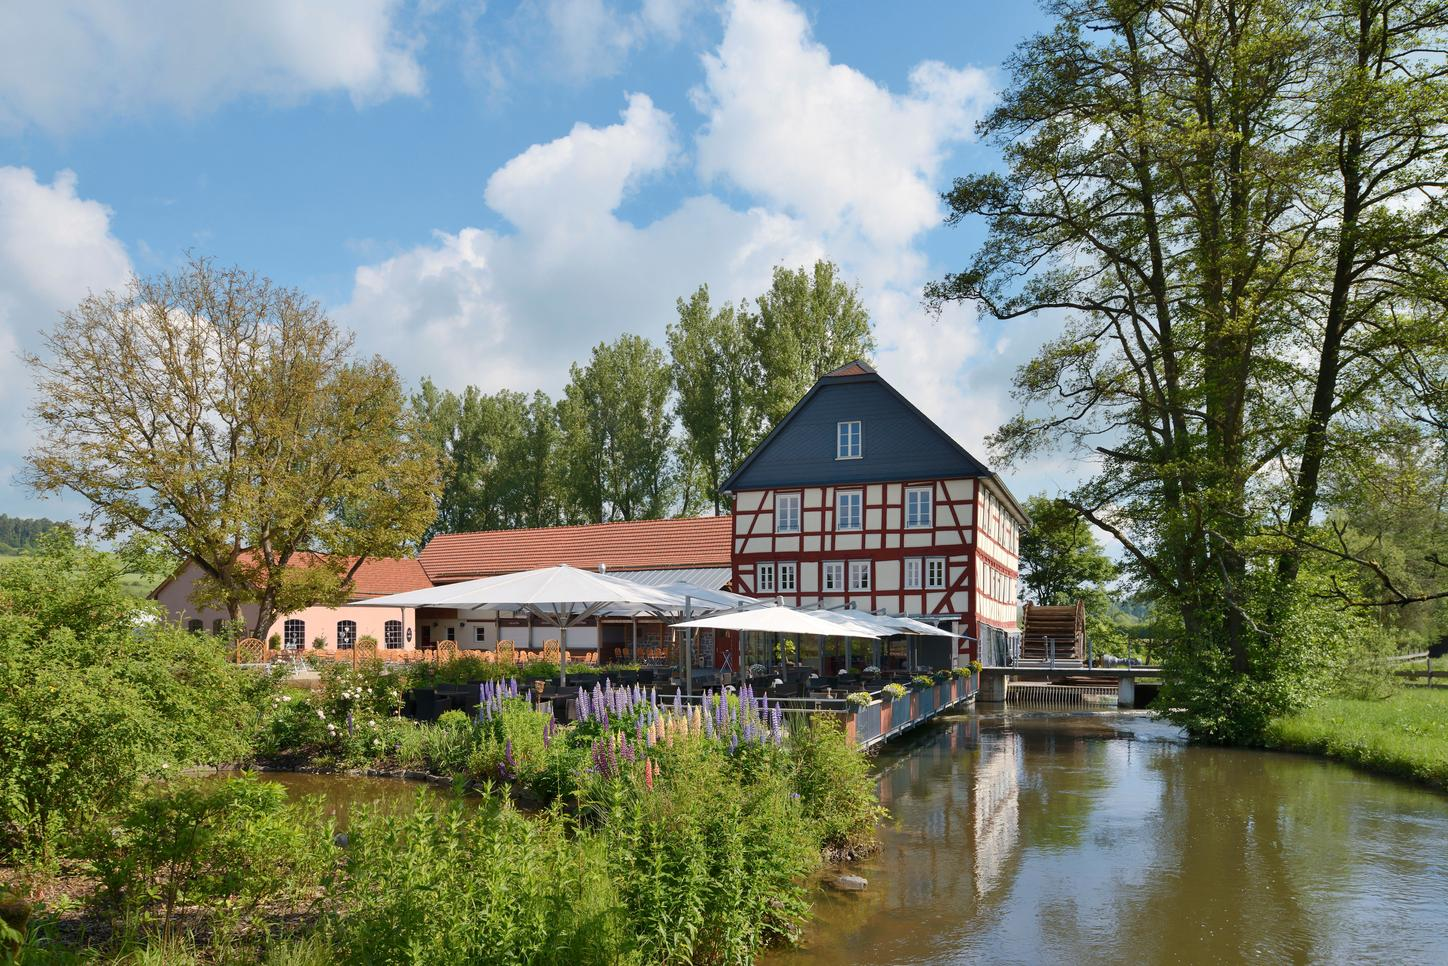 The picture shows the Walkemühle country estate